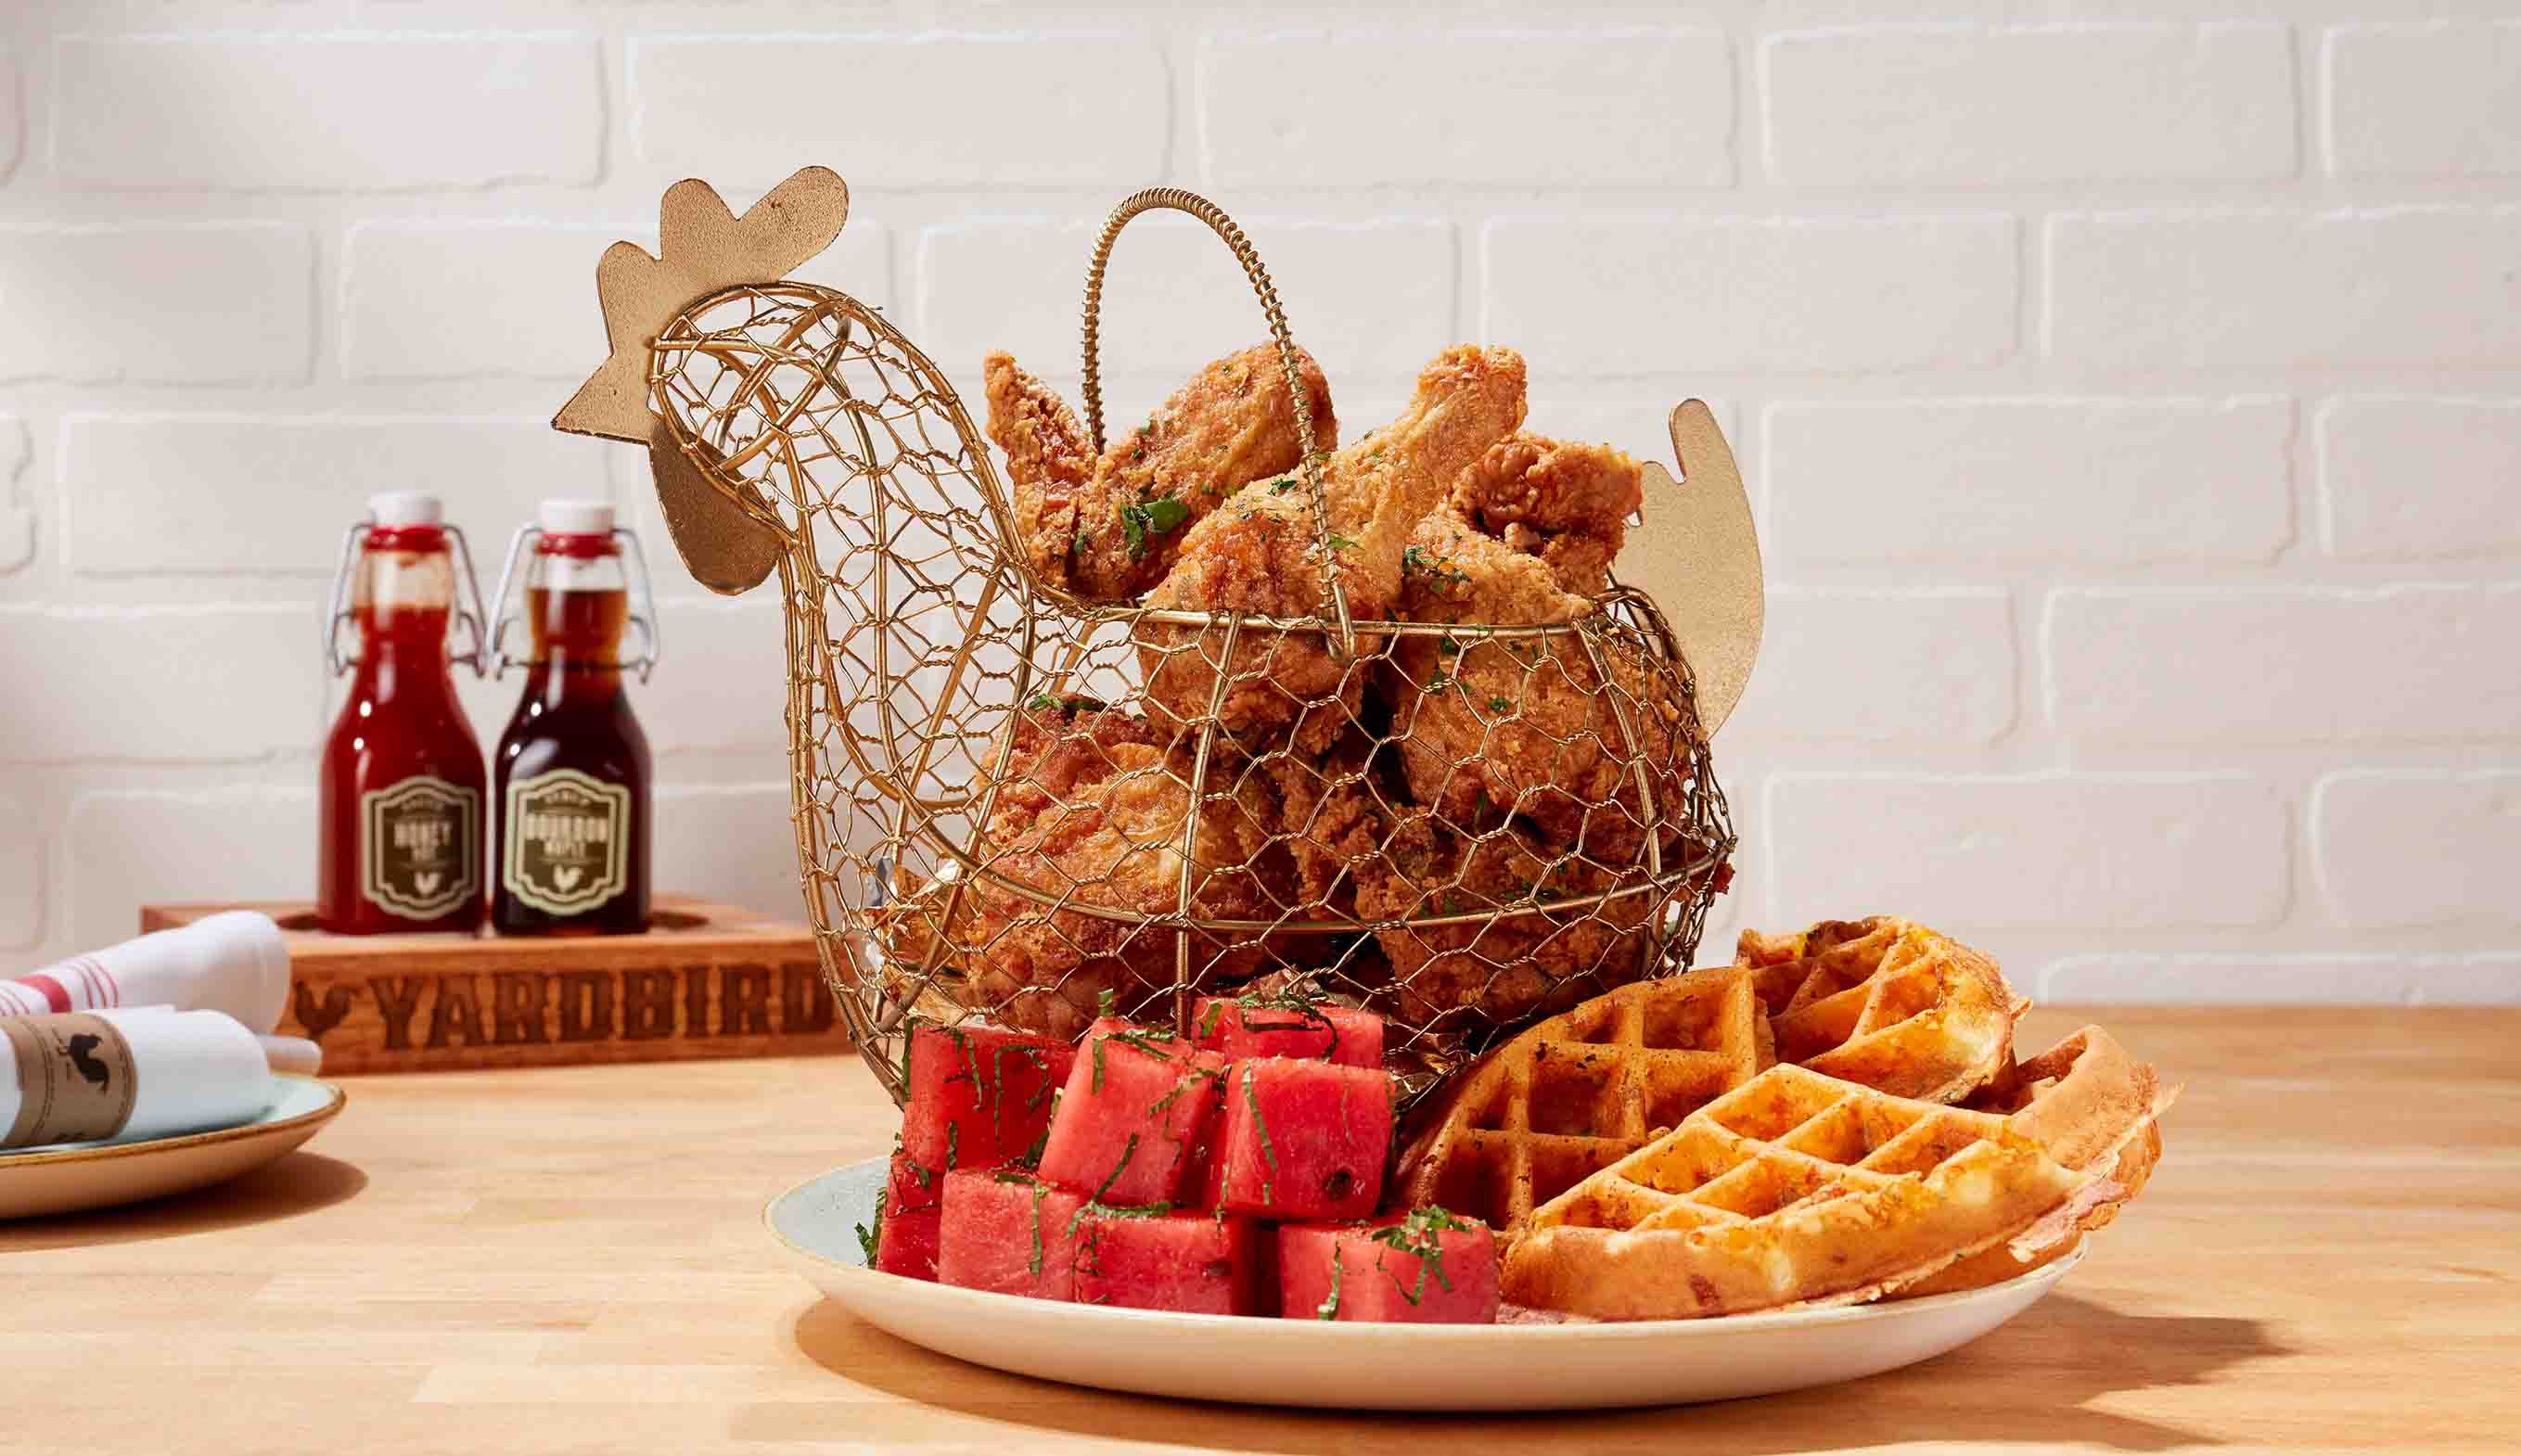 Chicken 'N' Watermelon 'N' Waffles (S$40++)